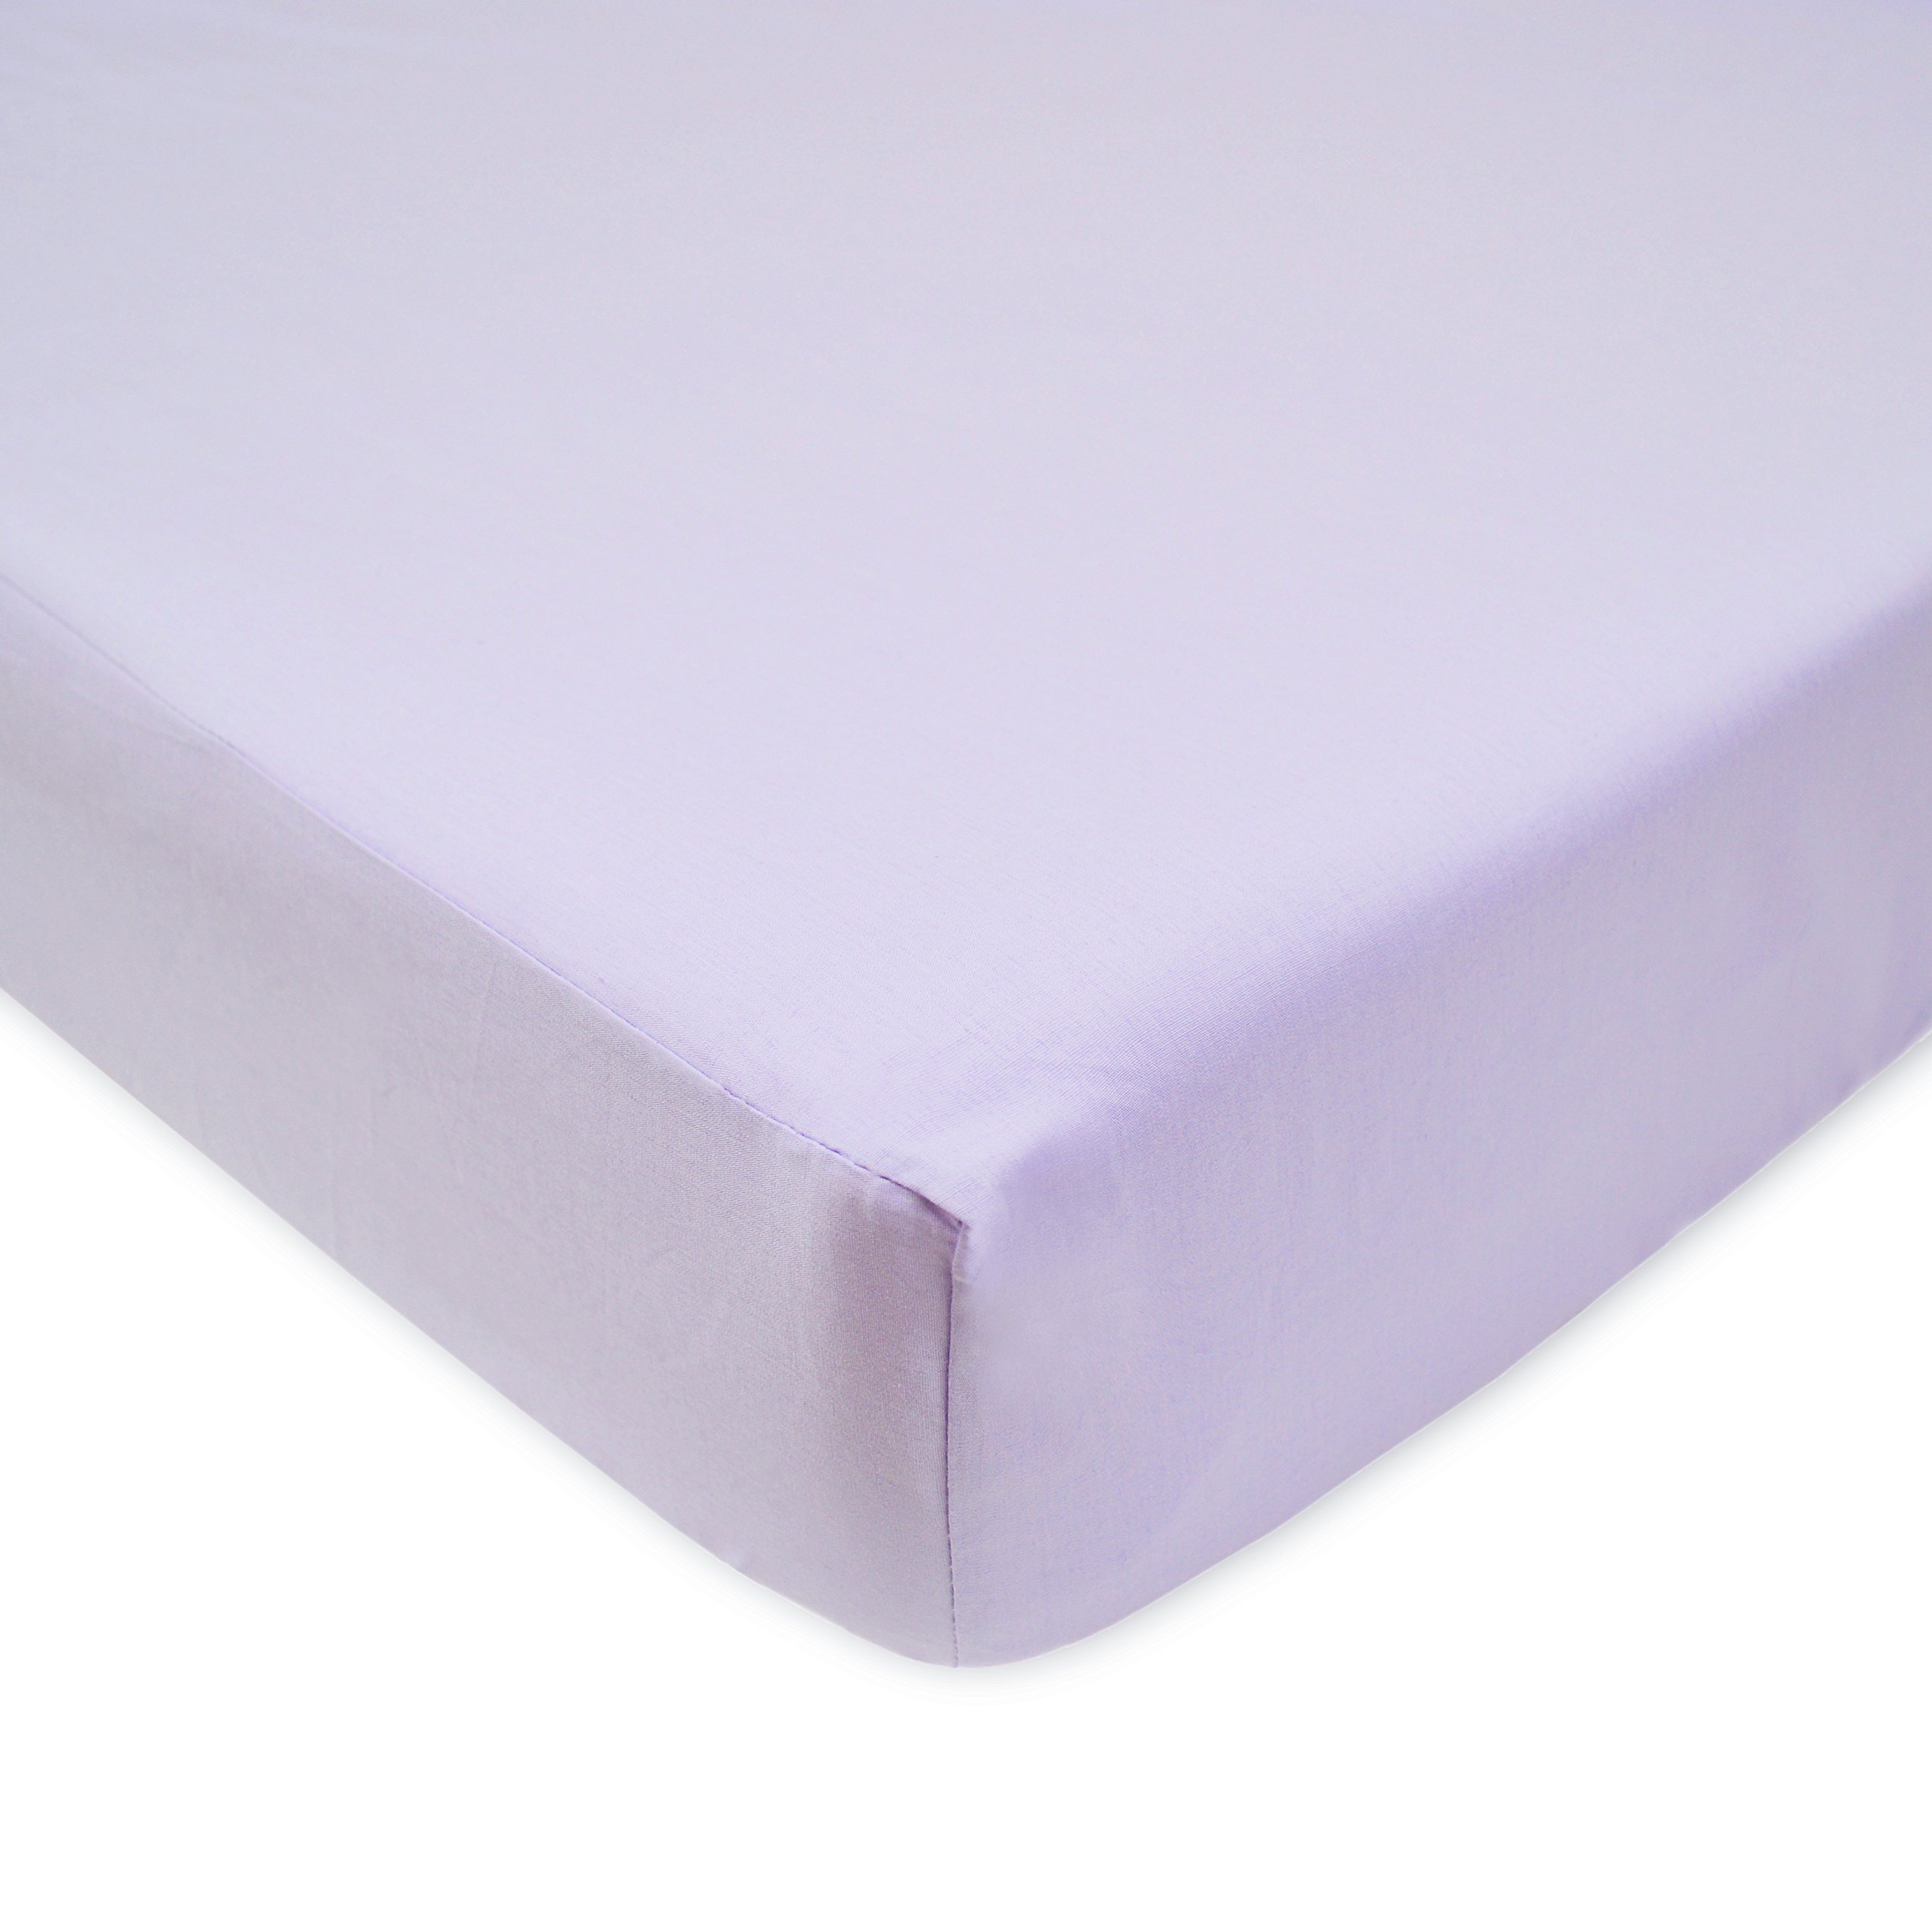 American Baby Company 100% Cotton Percale Fitted Crib Sheet for Standard Crib and Toddler Mattresses, Lavender